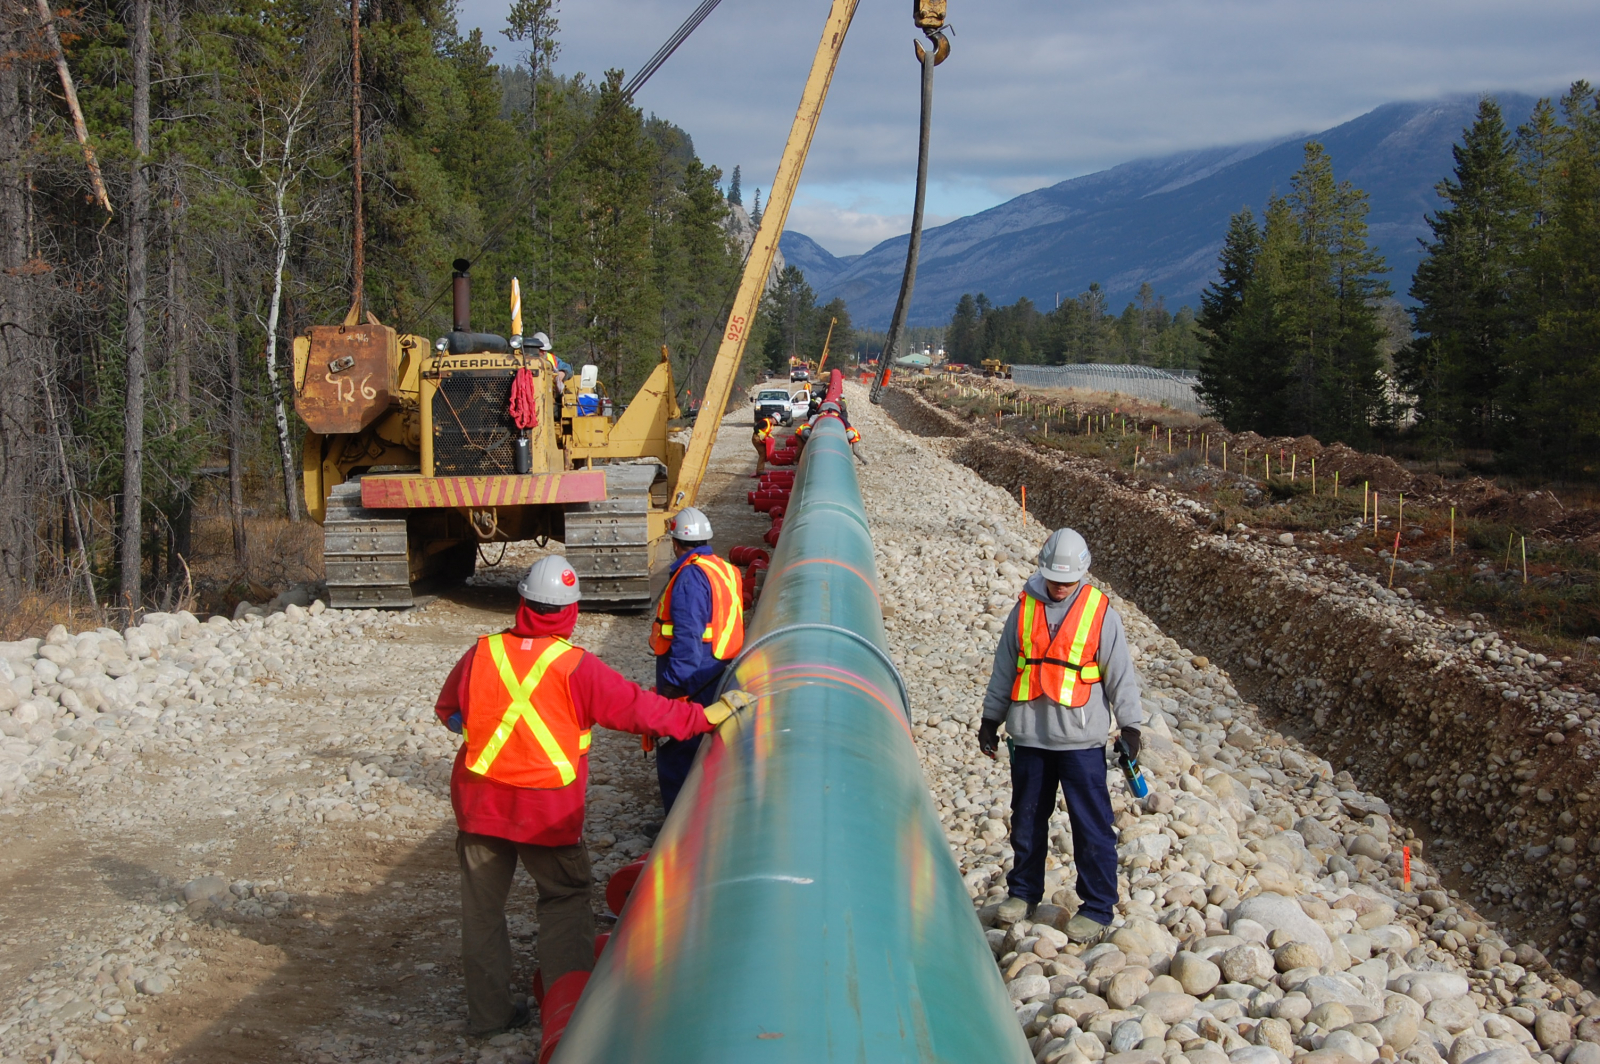 Court quashes Trudeau's approval of Trans Mountain pipeline By Mike De Souza in News Energy | August 30th 2018